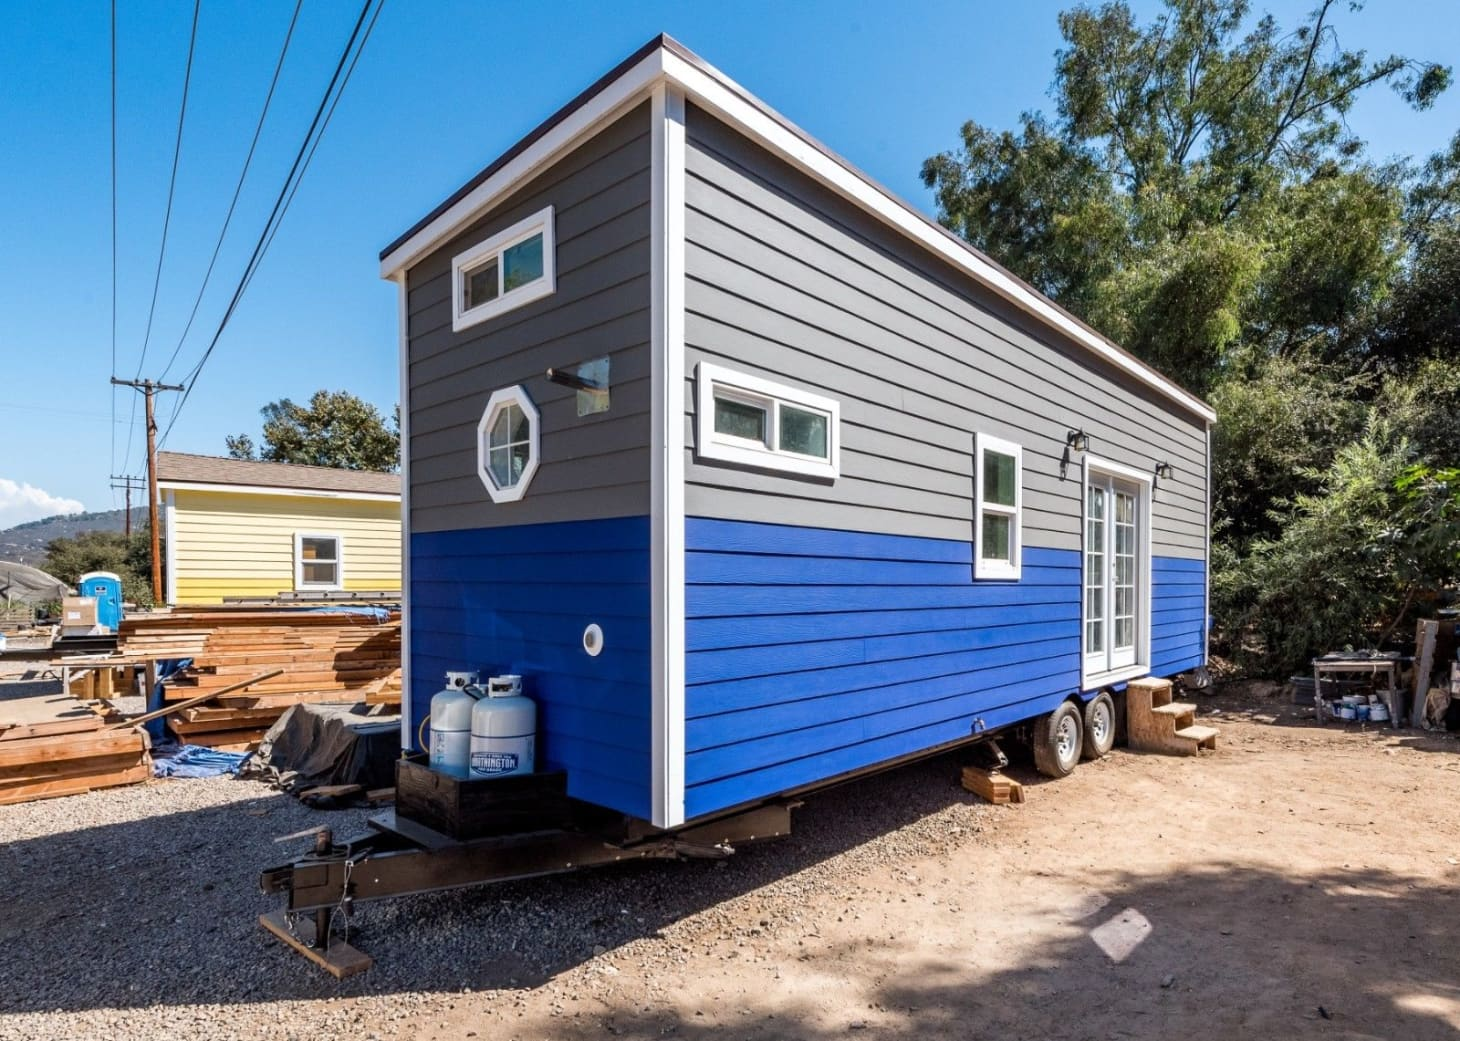 5 Tiny Houses to Buy on eBay | Apartment Therapy